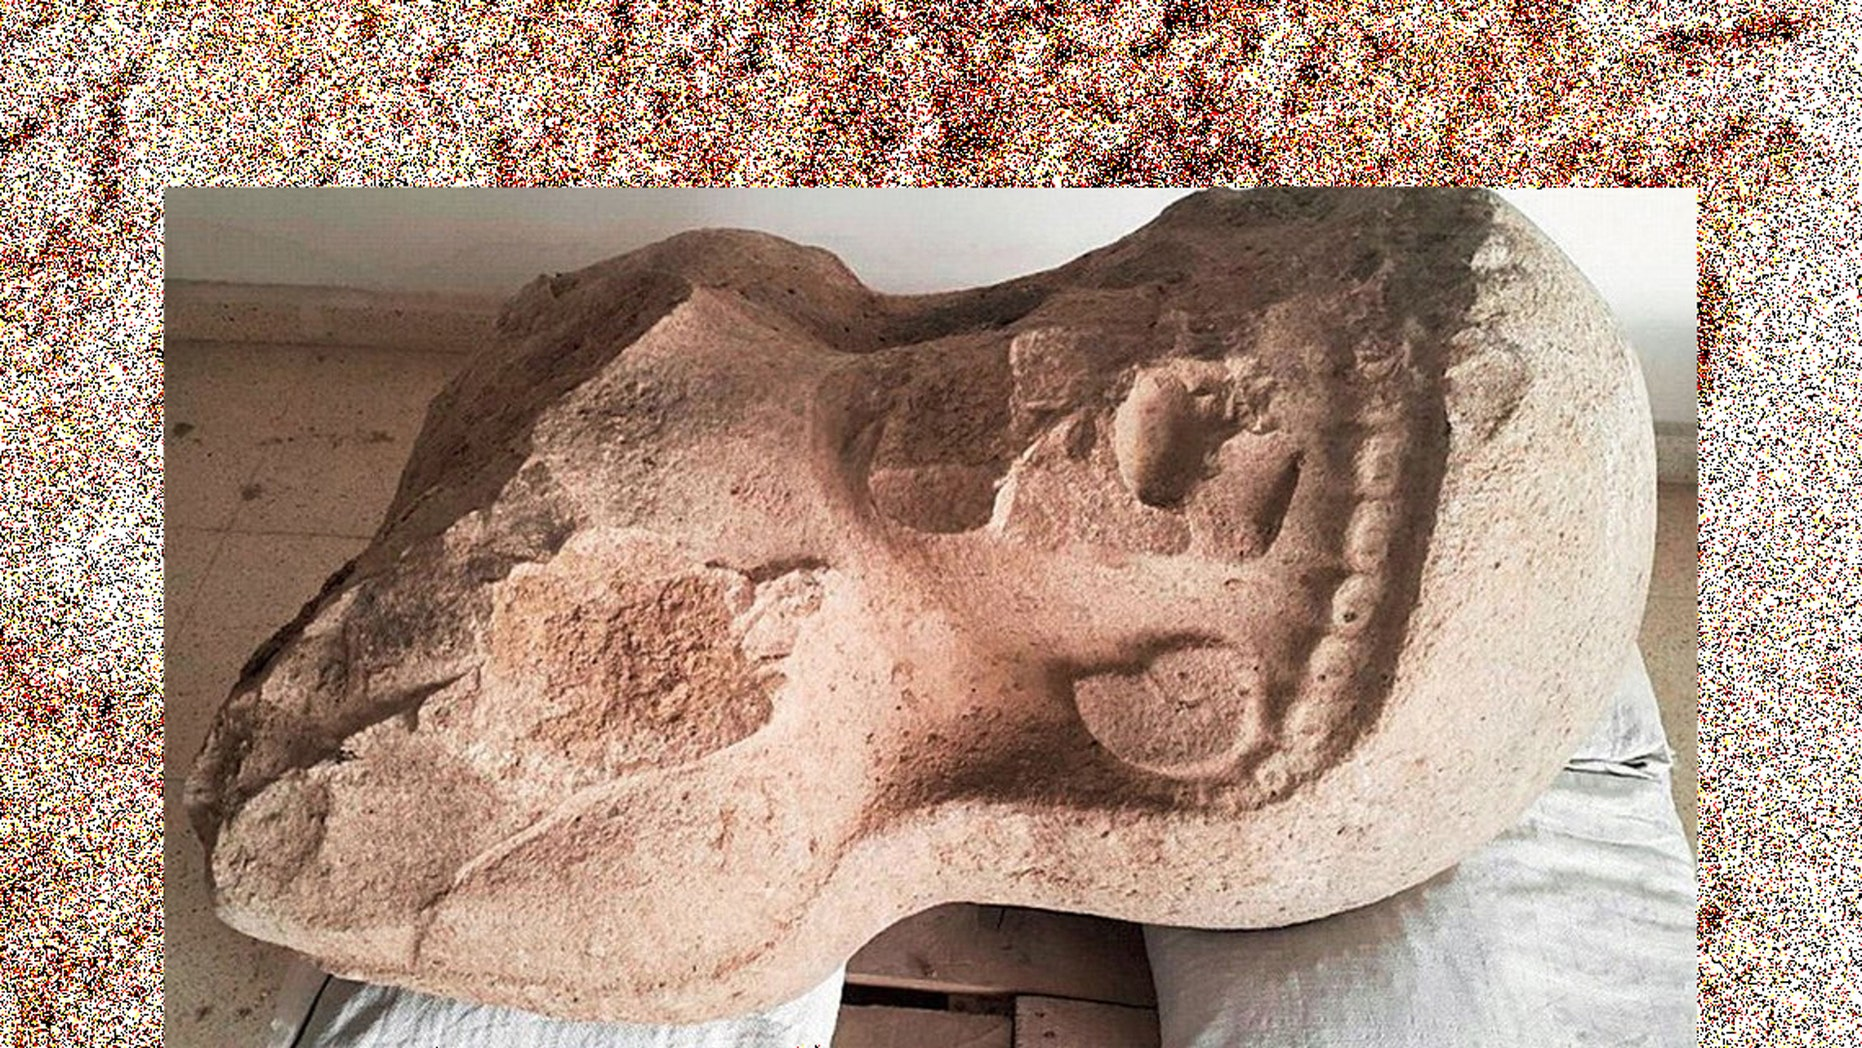 This statue was uncovered at a citadel gate complex in Turkey by U of T archaeologists leading the Tayinat Archaeological Project (Credit: The Tayinat Archaeological Project)